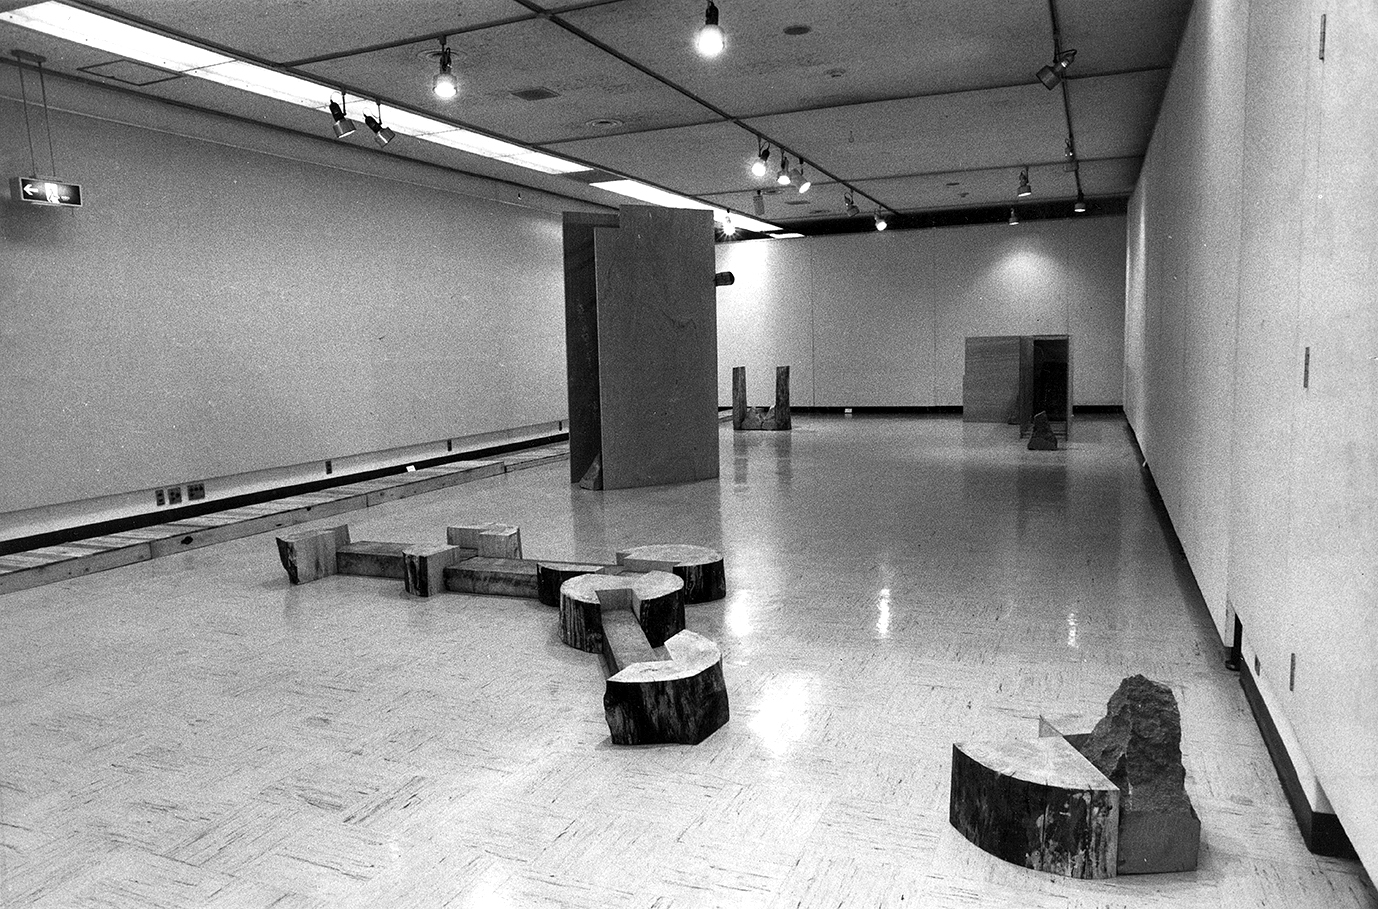 Exposed Realm , 1986 露界( Rokai ) Wood, plywood,stones Installation view,  The 22nd Artists Today '86: Apocalypse in Contemporary Art I — From the Depth of Soul , Yokohama Civic Art Gallery, 1986. Photo: Tsuyoshi Satoh